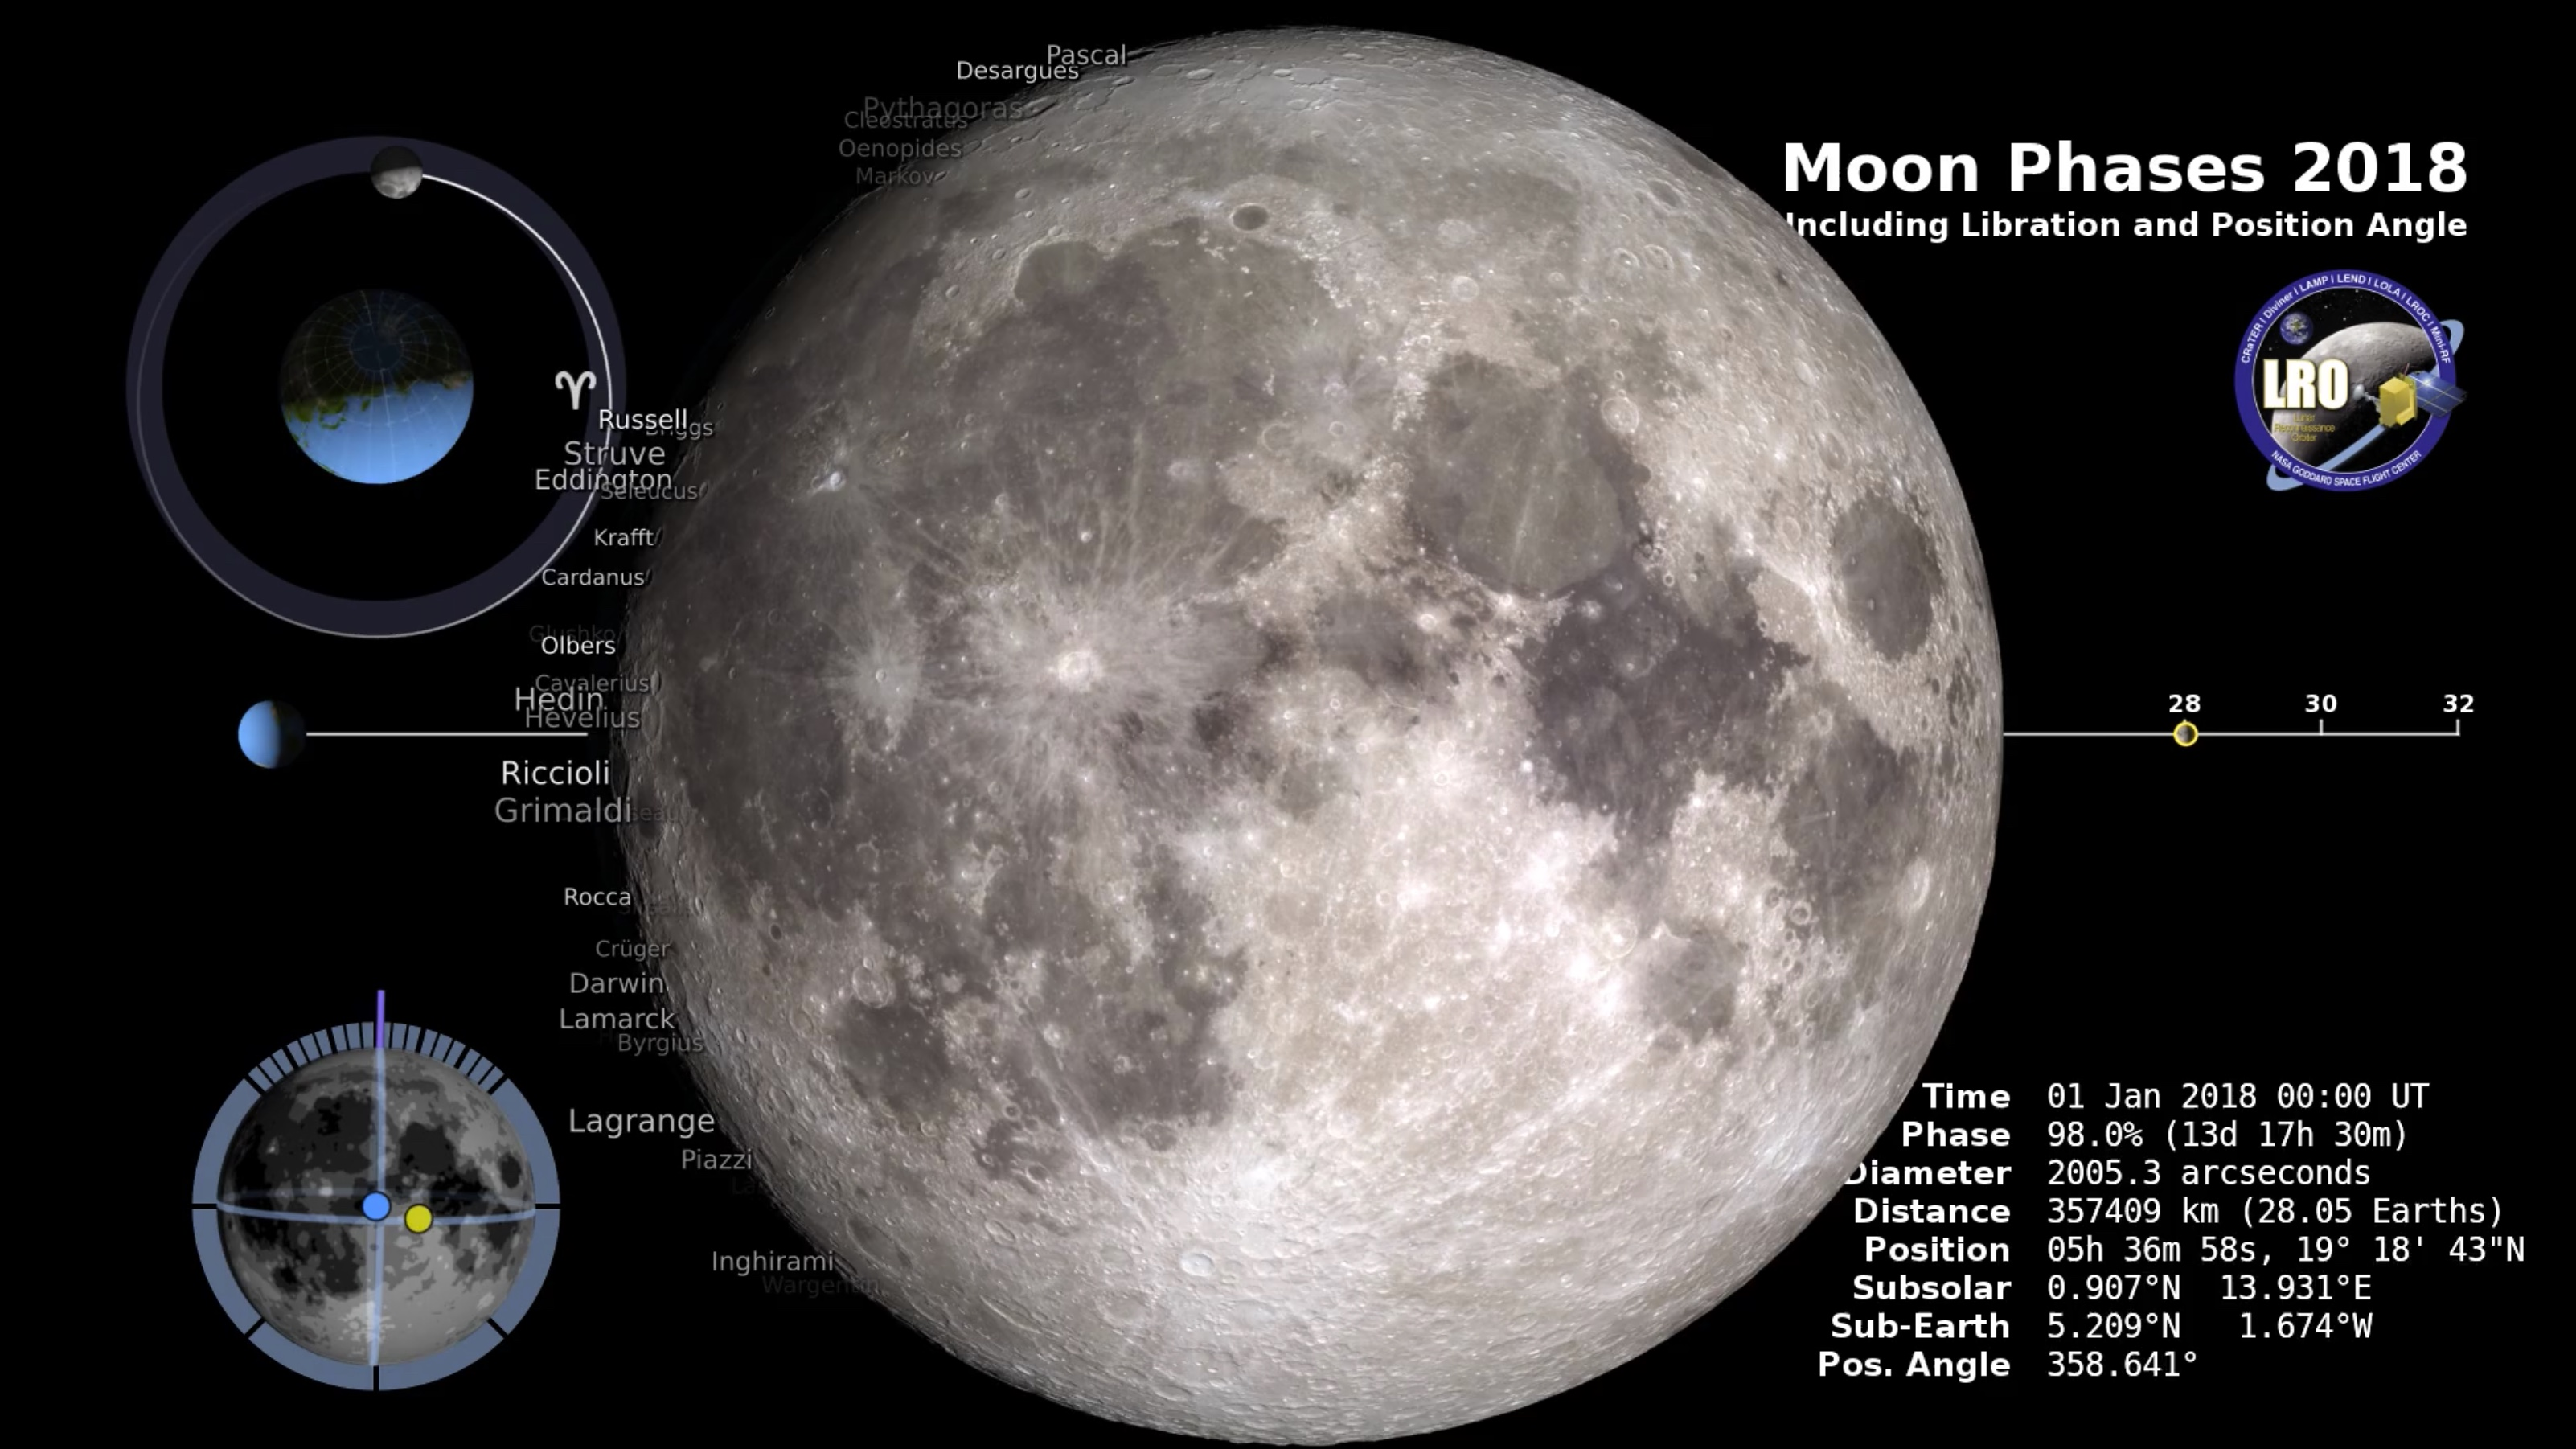 Moon Phase And Libration